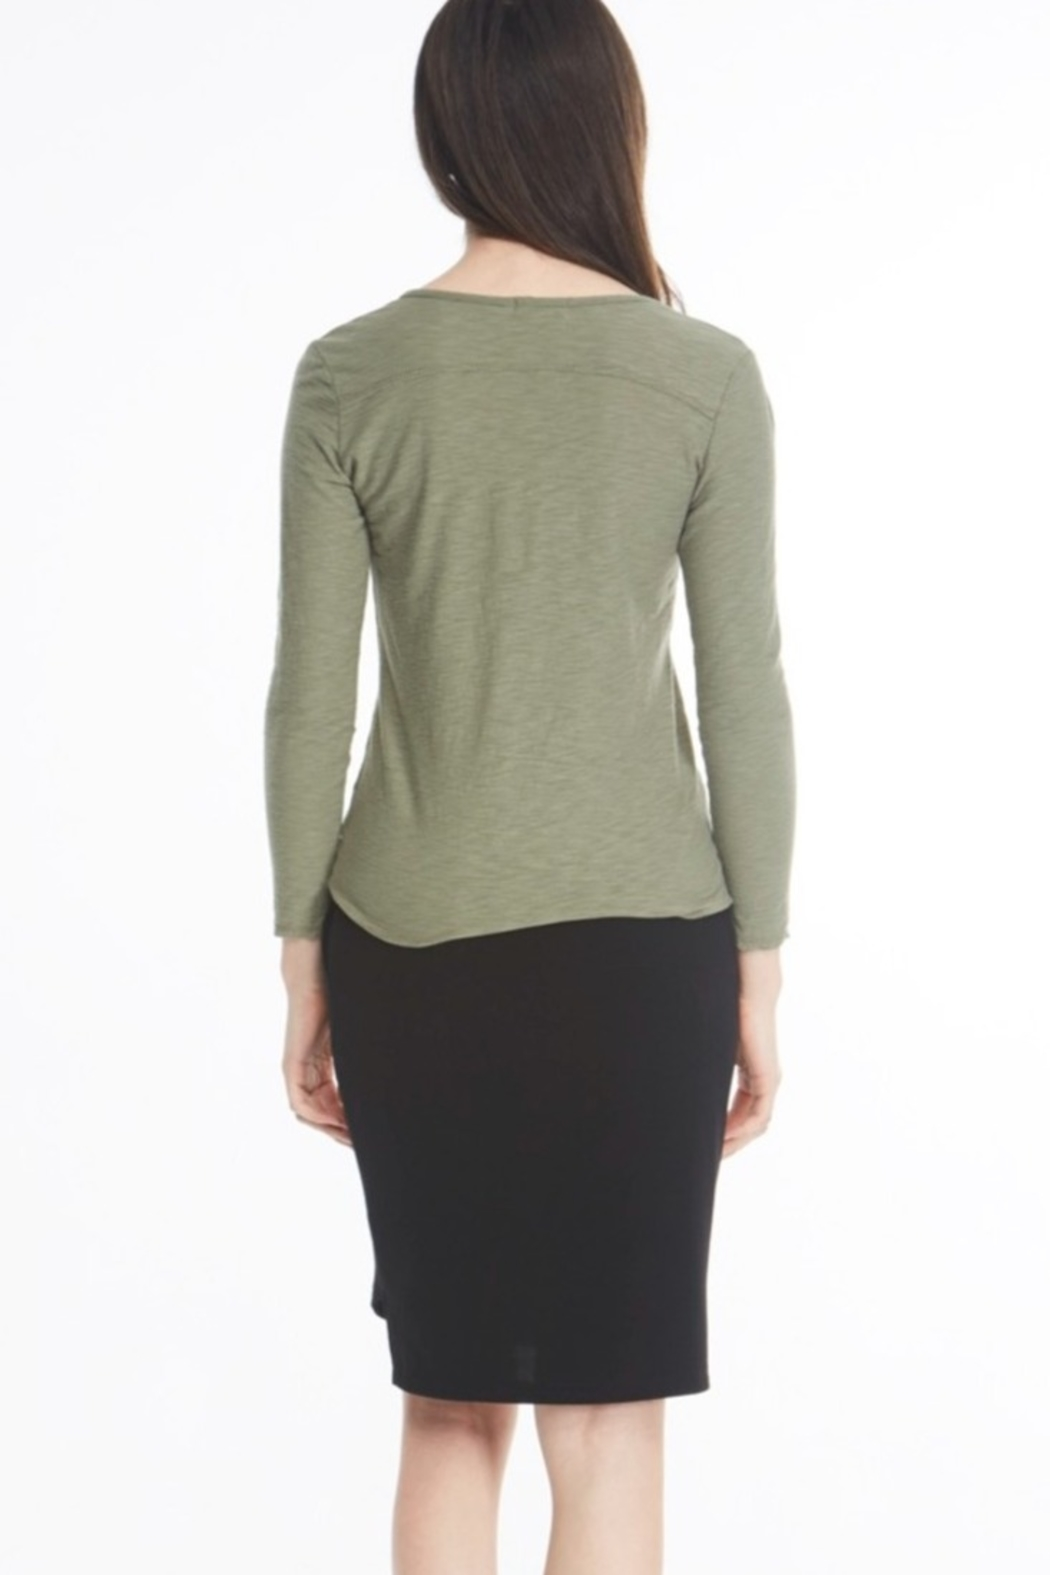 Michelle by Comune Mesa V Neck Long Sleeve Top - Main Image